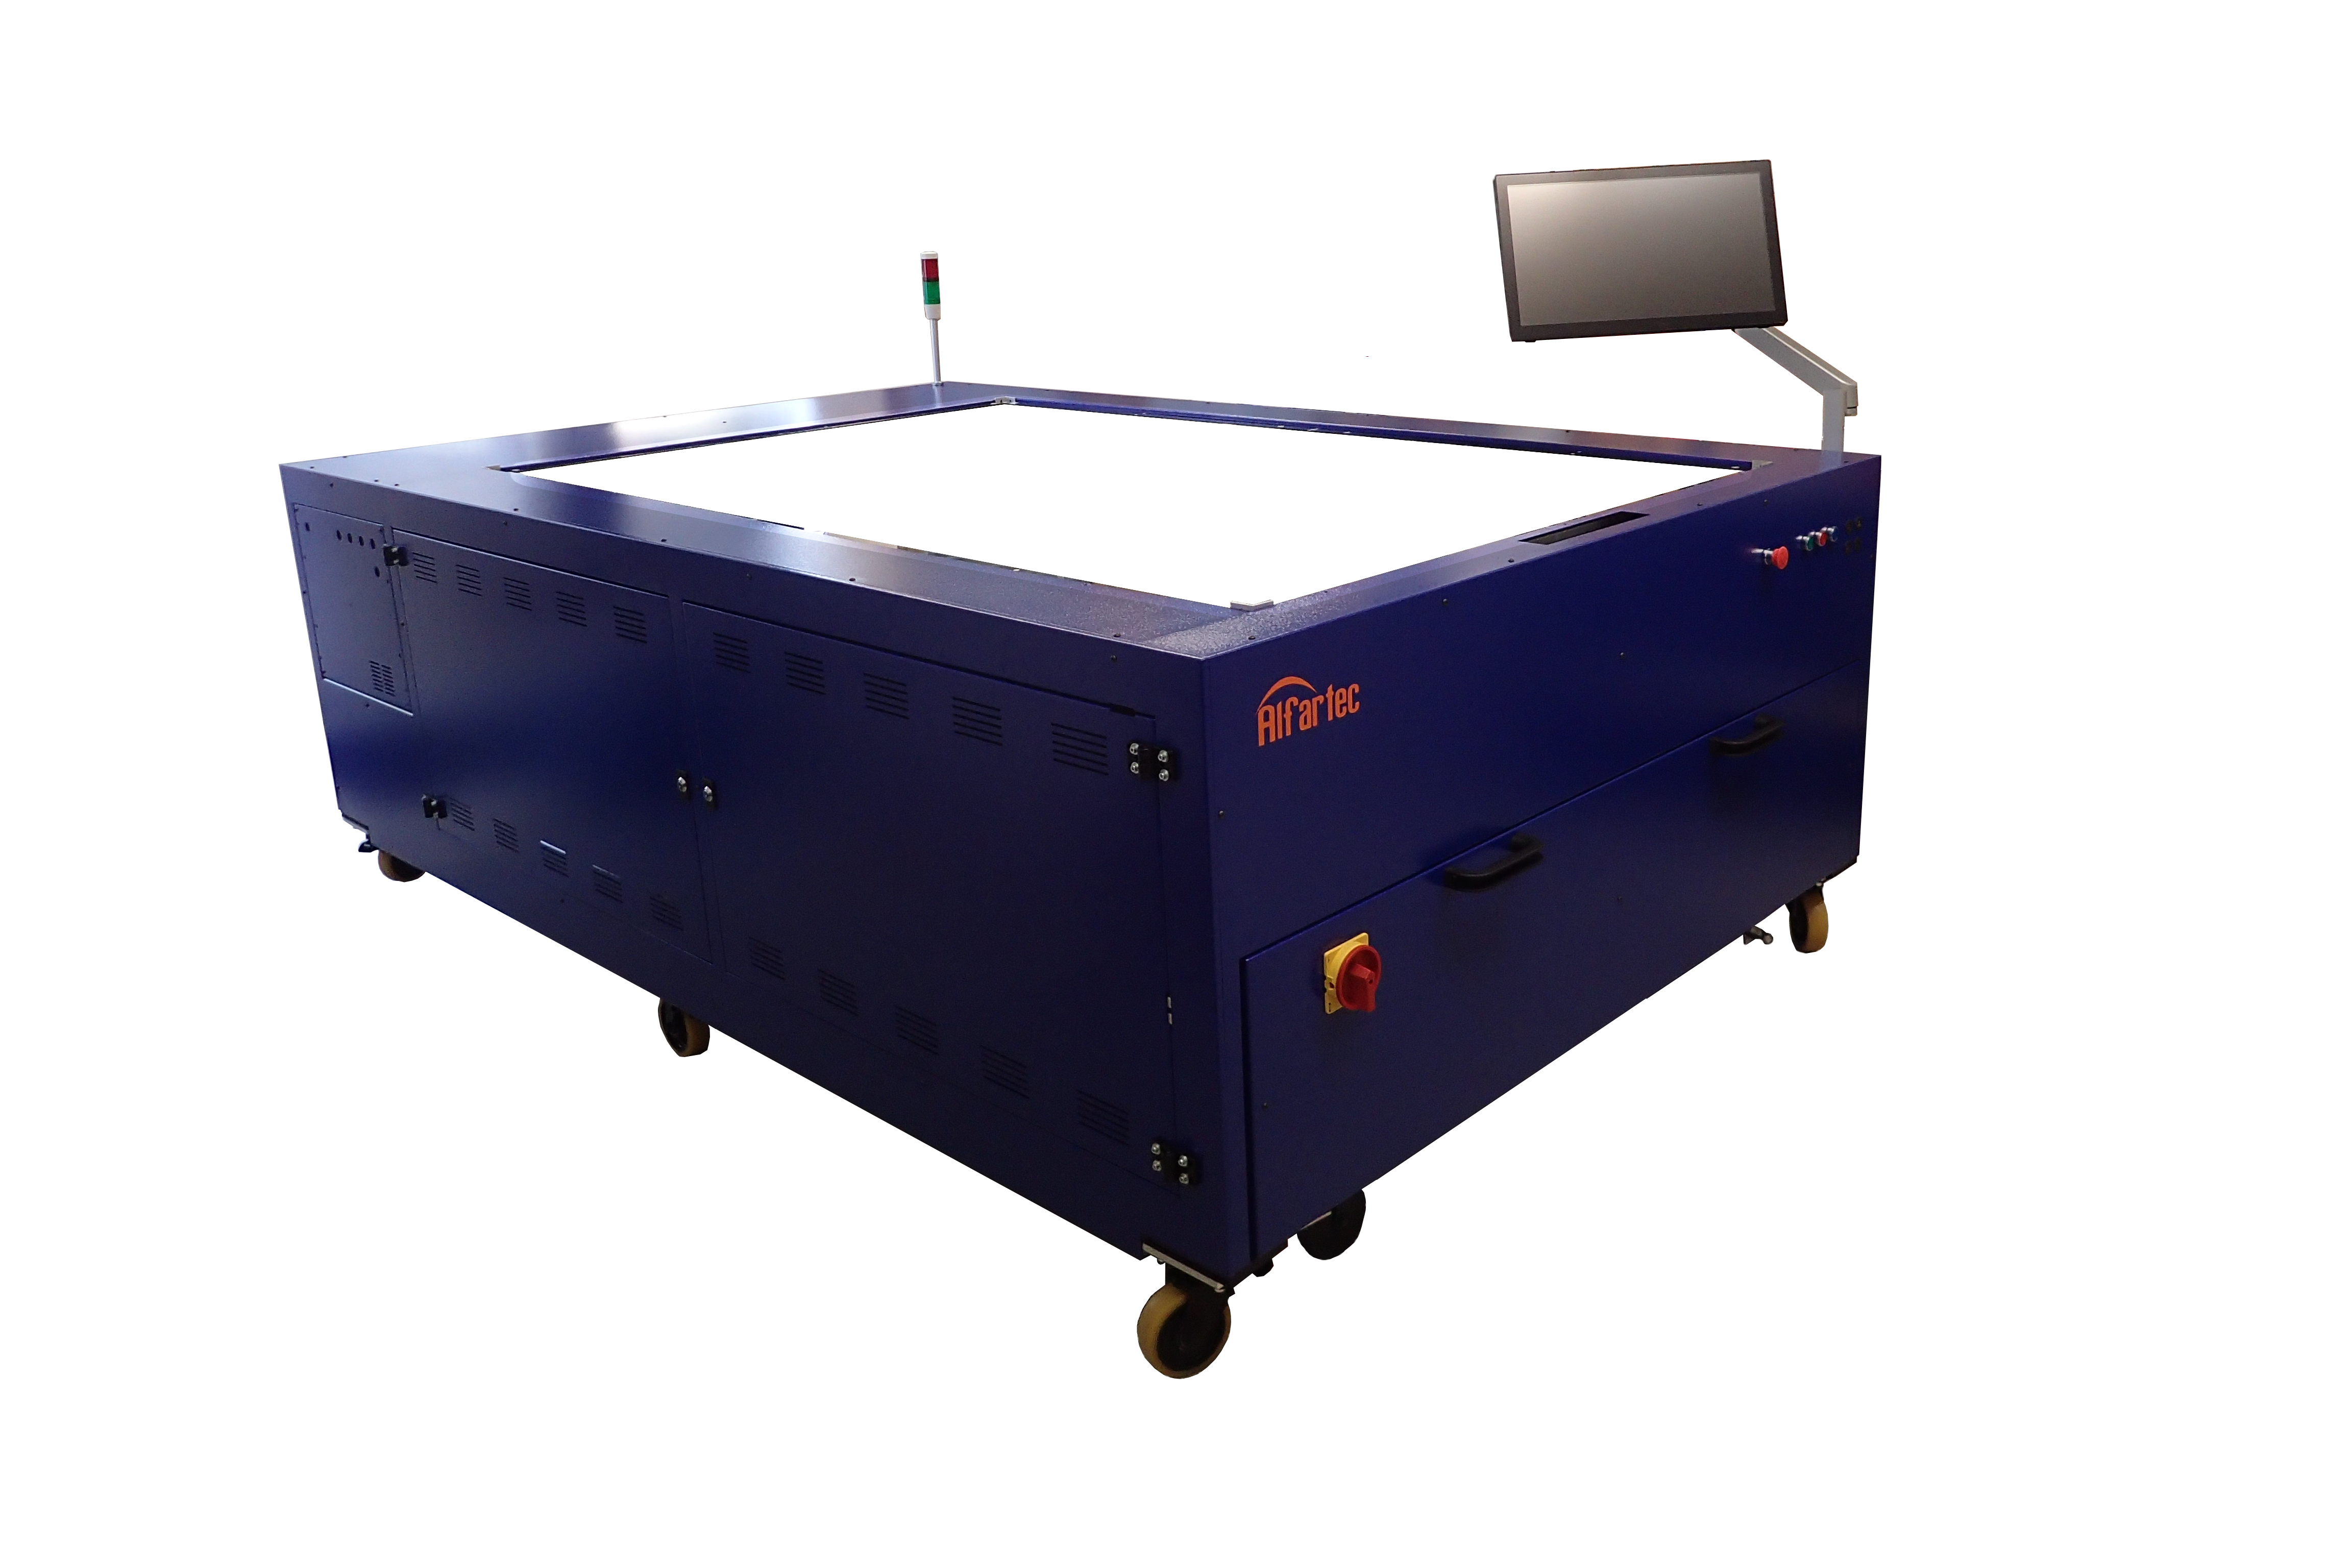 Swiss-based solar simulator equipment supplier Alfartec has had its new generation of module tester, BlueSky MT240 certified by China's 3rd party lab, NIM at a 'Silicon Module Super League' (SMSL) member at a c-Si module manufacturing plant in China. Image: Alfartec